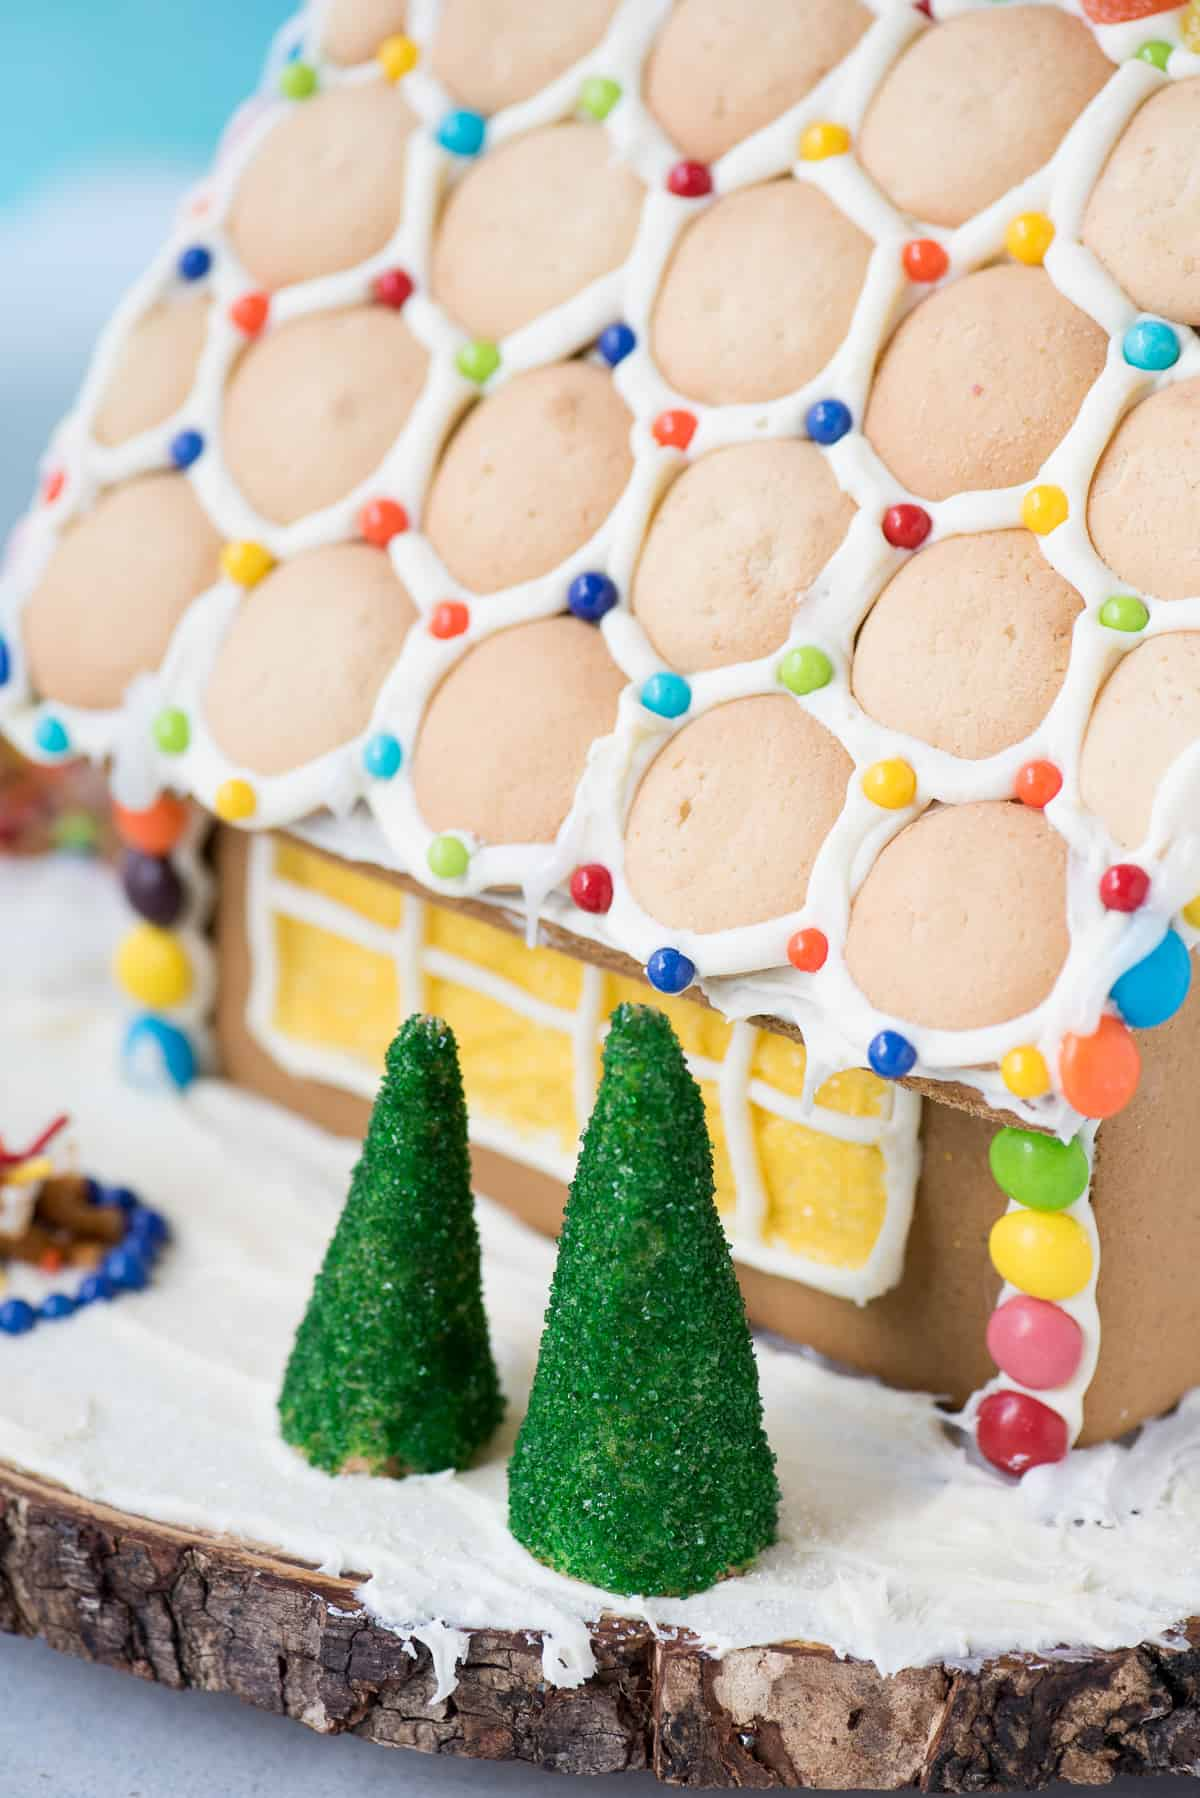 Get some inspiration for your holiday gingerbread house decorating with our gingerbread house tutorial and VIDEO